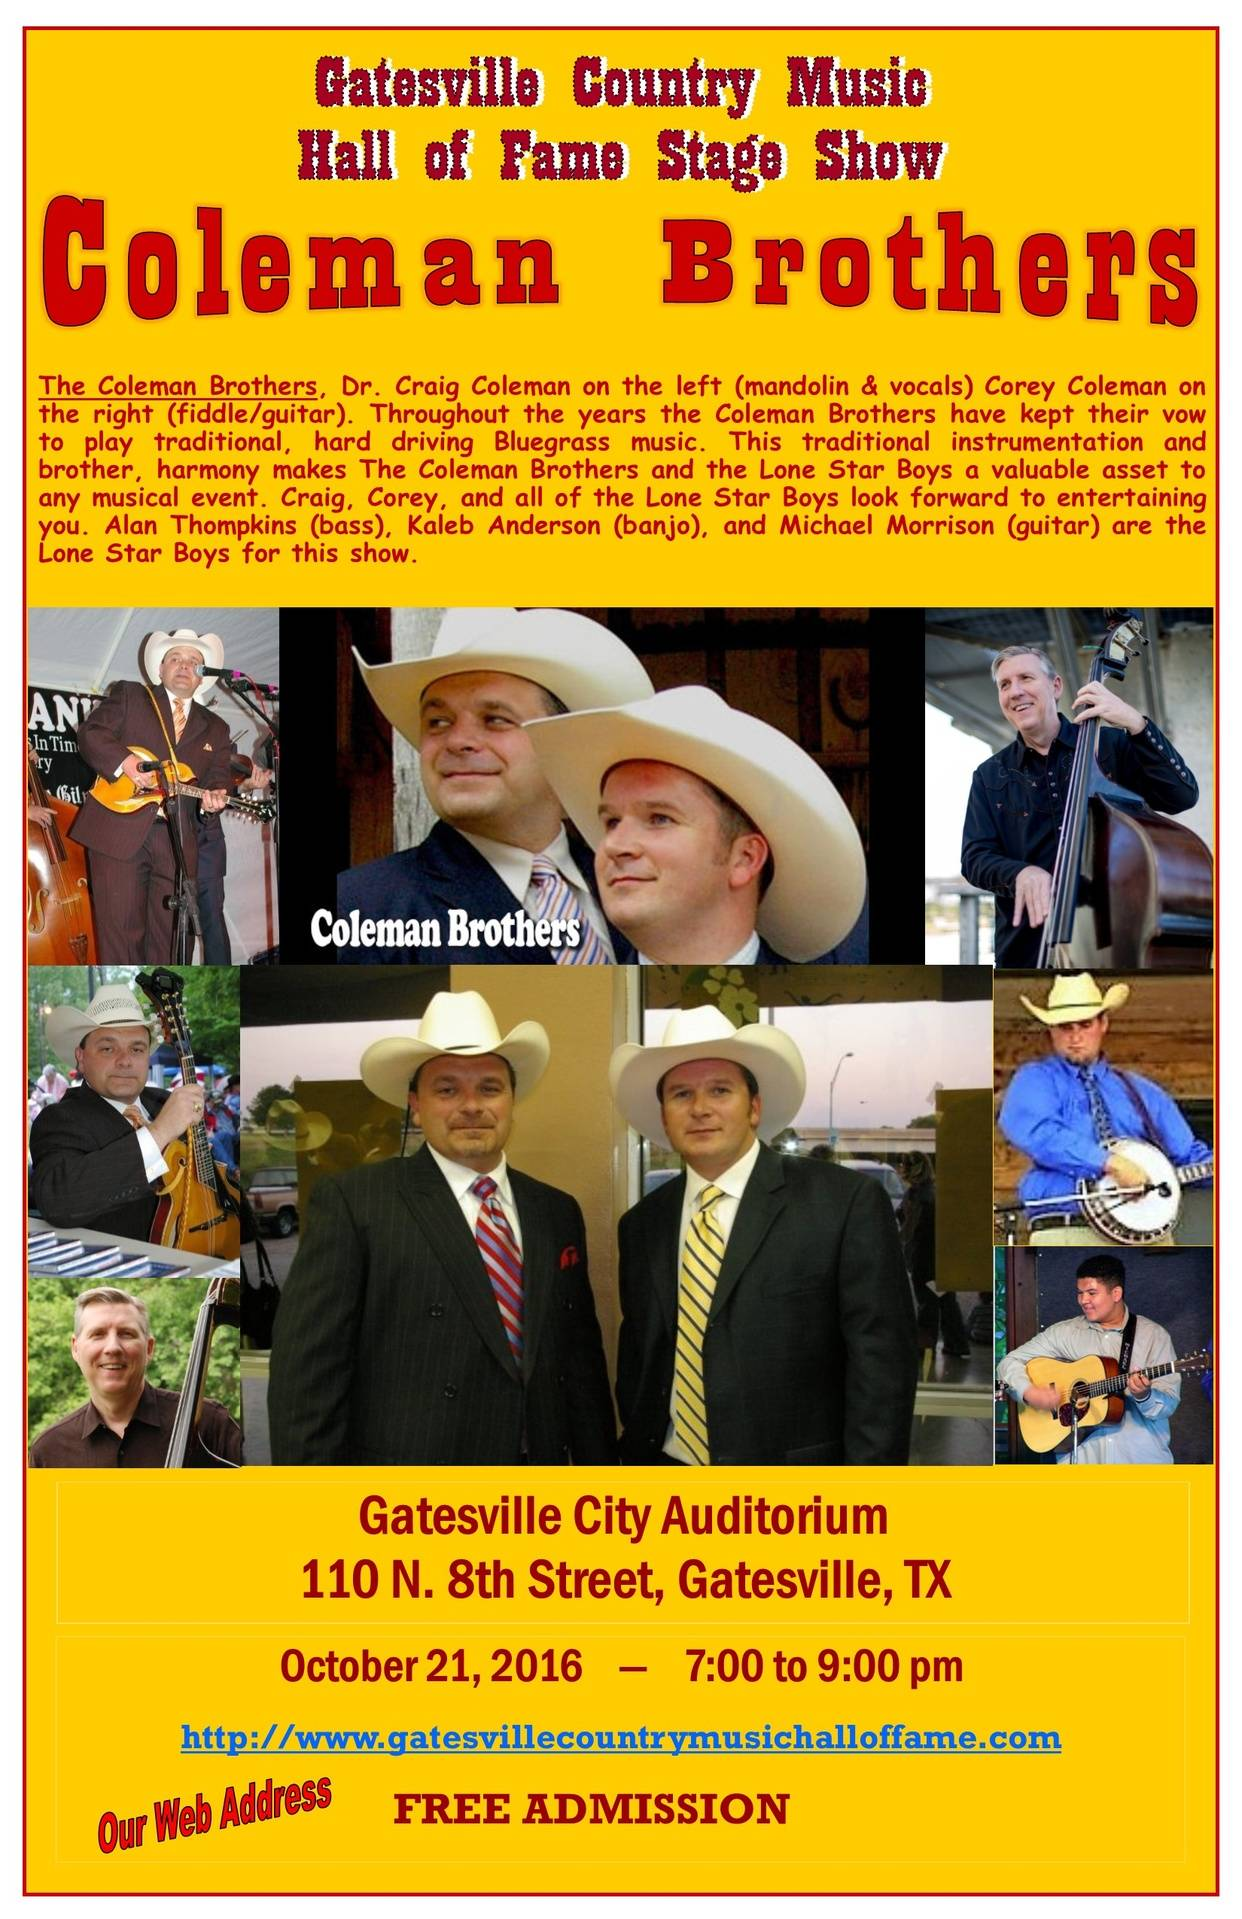 The Coleman Brothers and The Lone Star Boys, Oct. 21, 2016